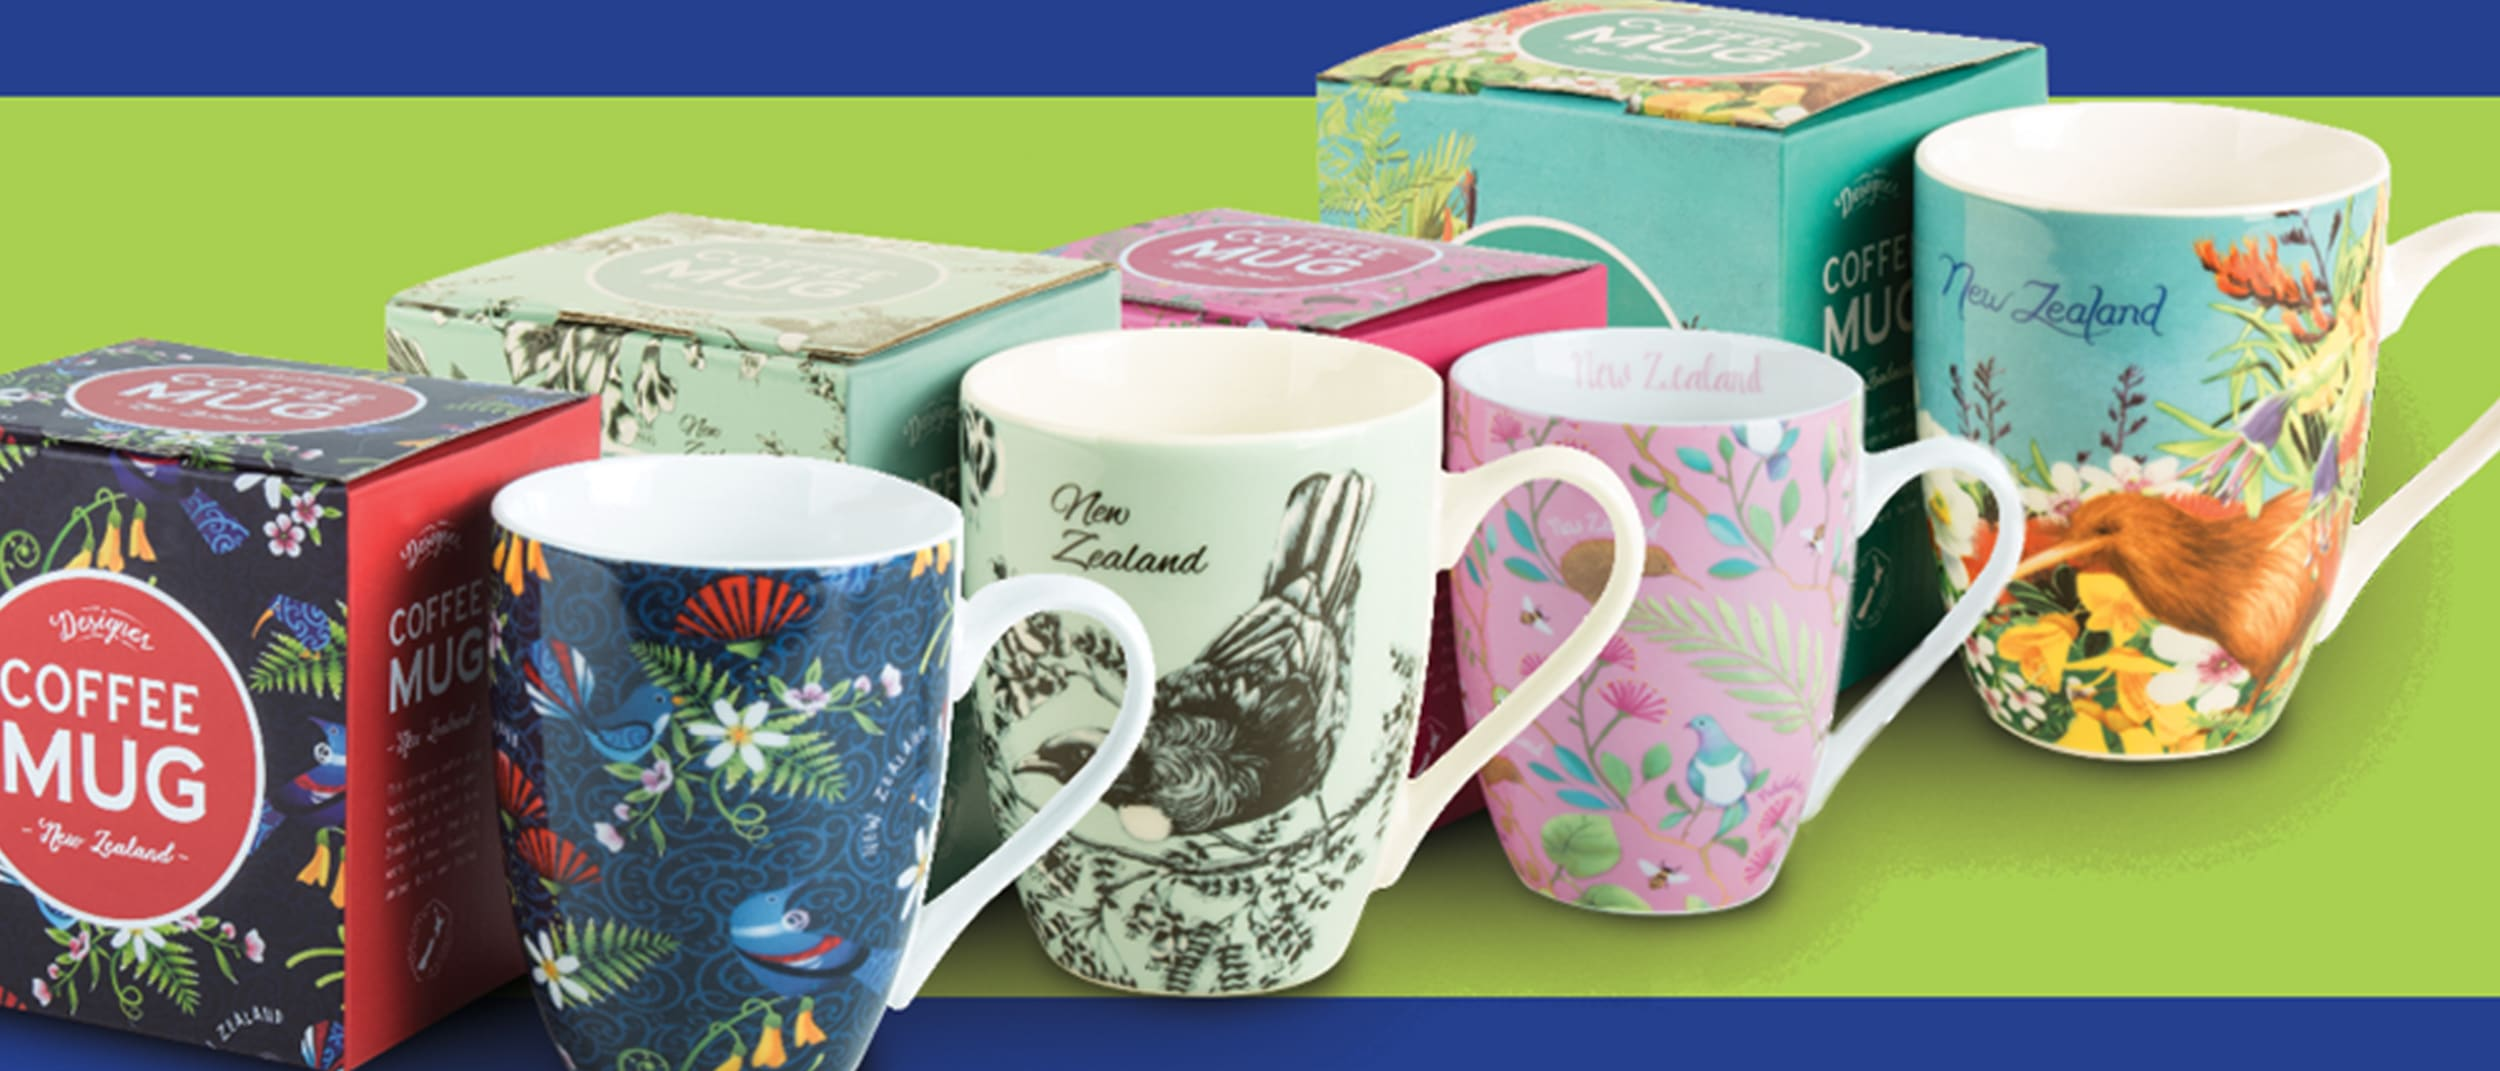 NZ The Gift: Free coffee mug when you spend $60*